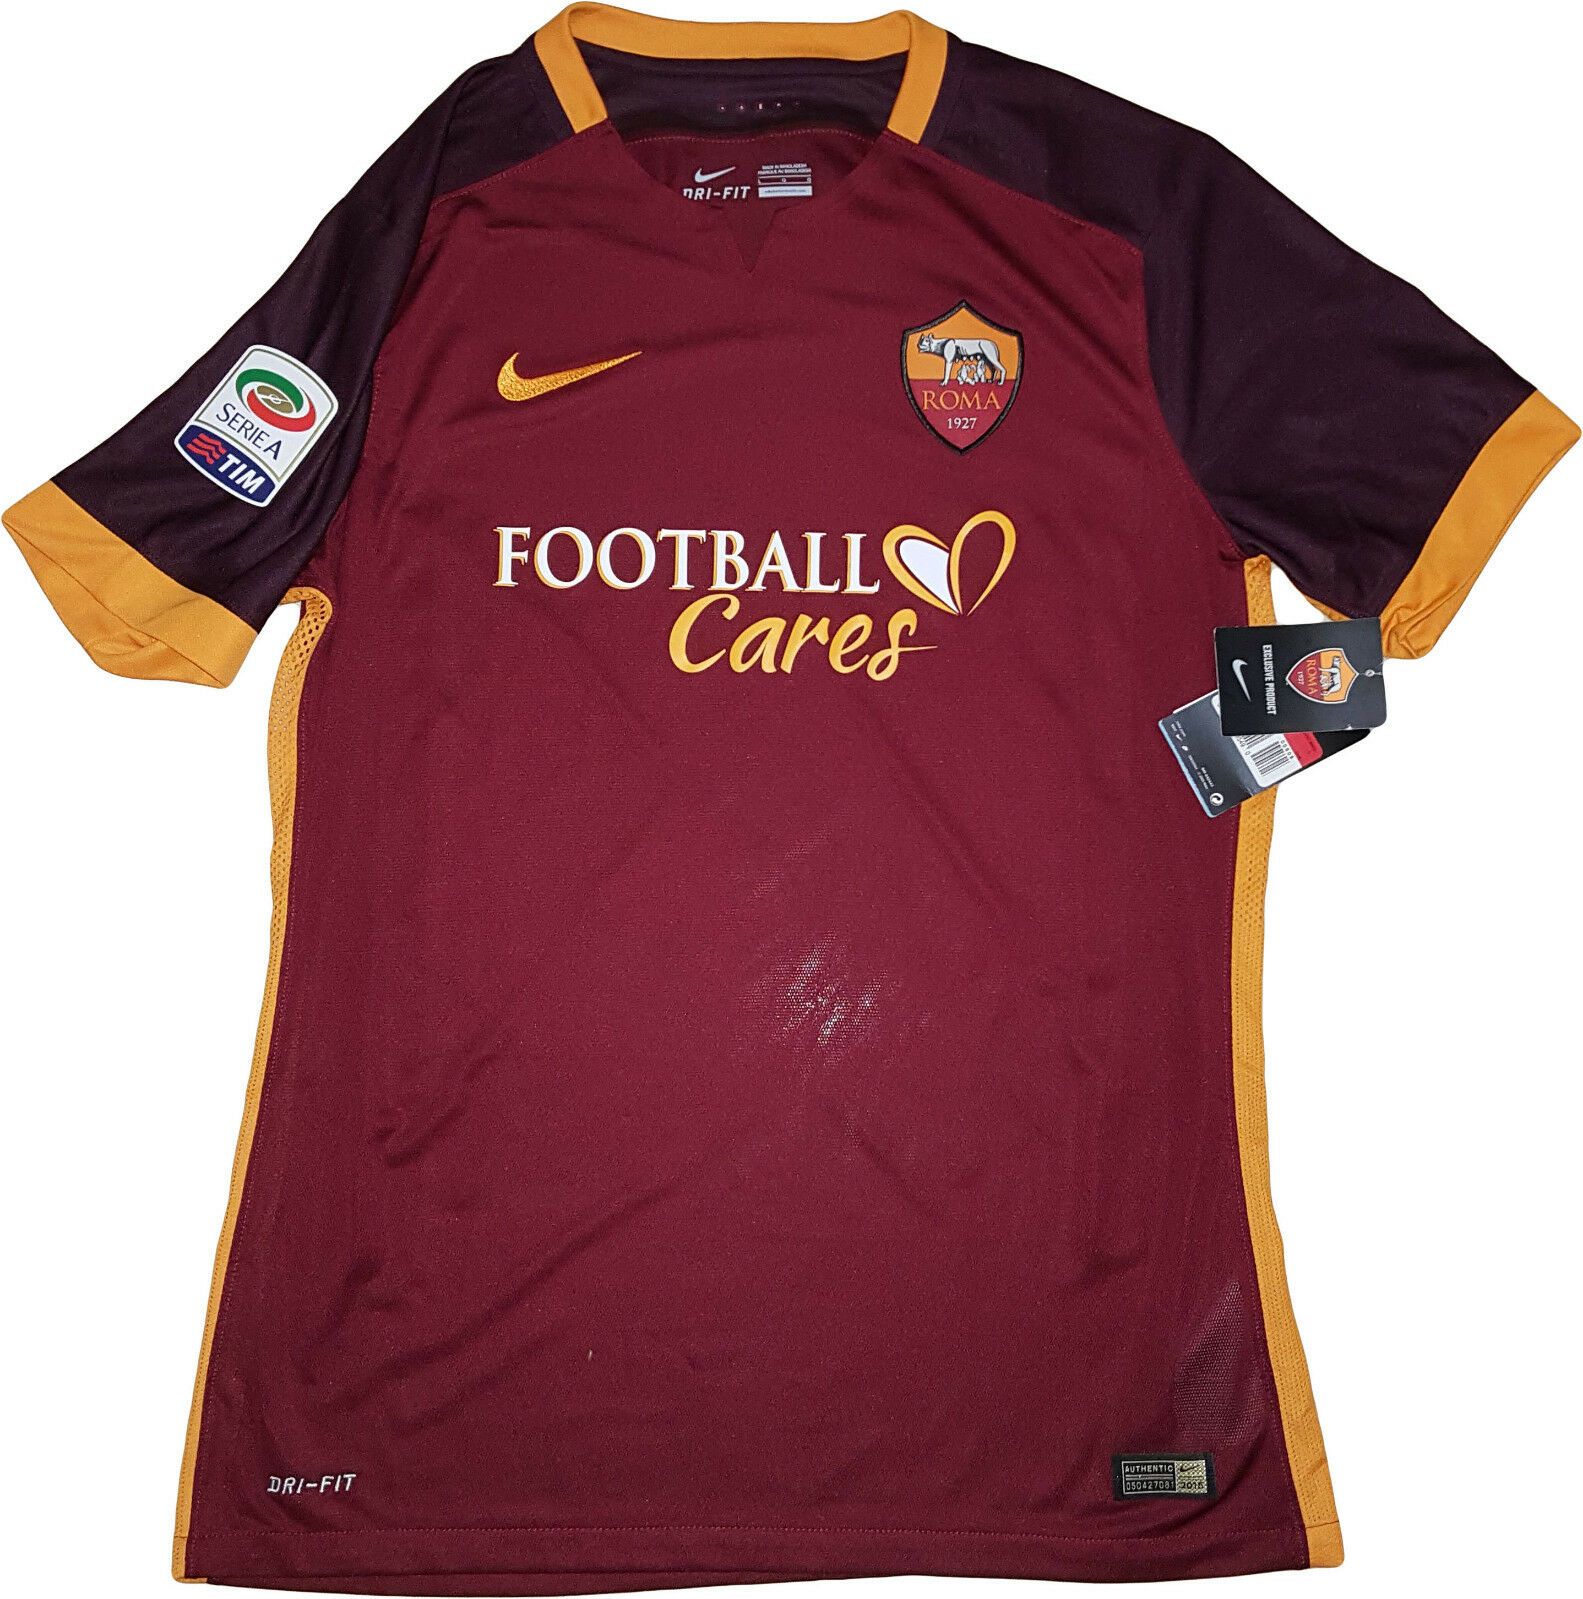 MAGLIA ROMA TOTTI Football cares JERSEY NIKE AUTHENTIC ISSUE player 2015-2016